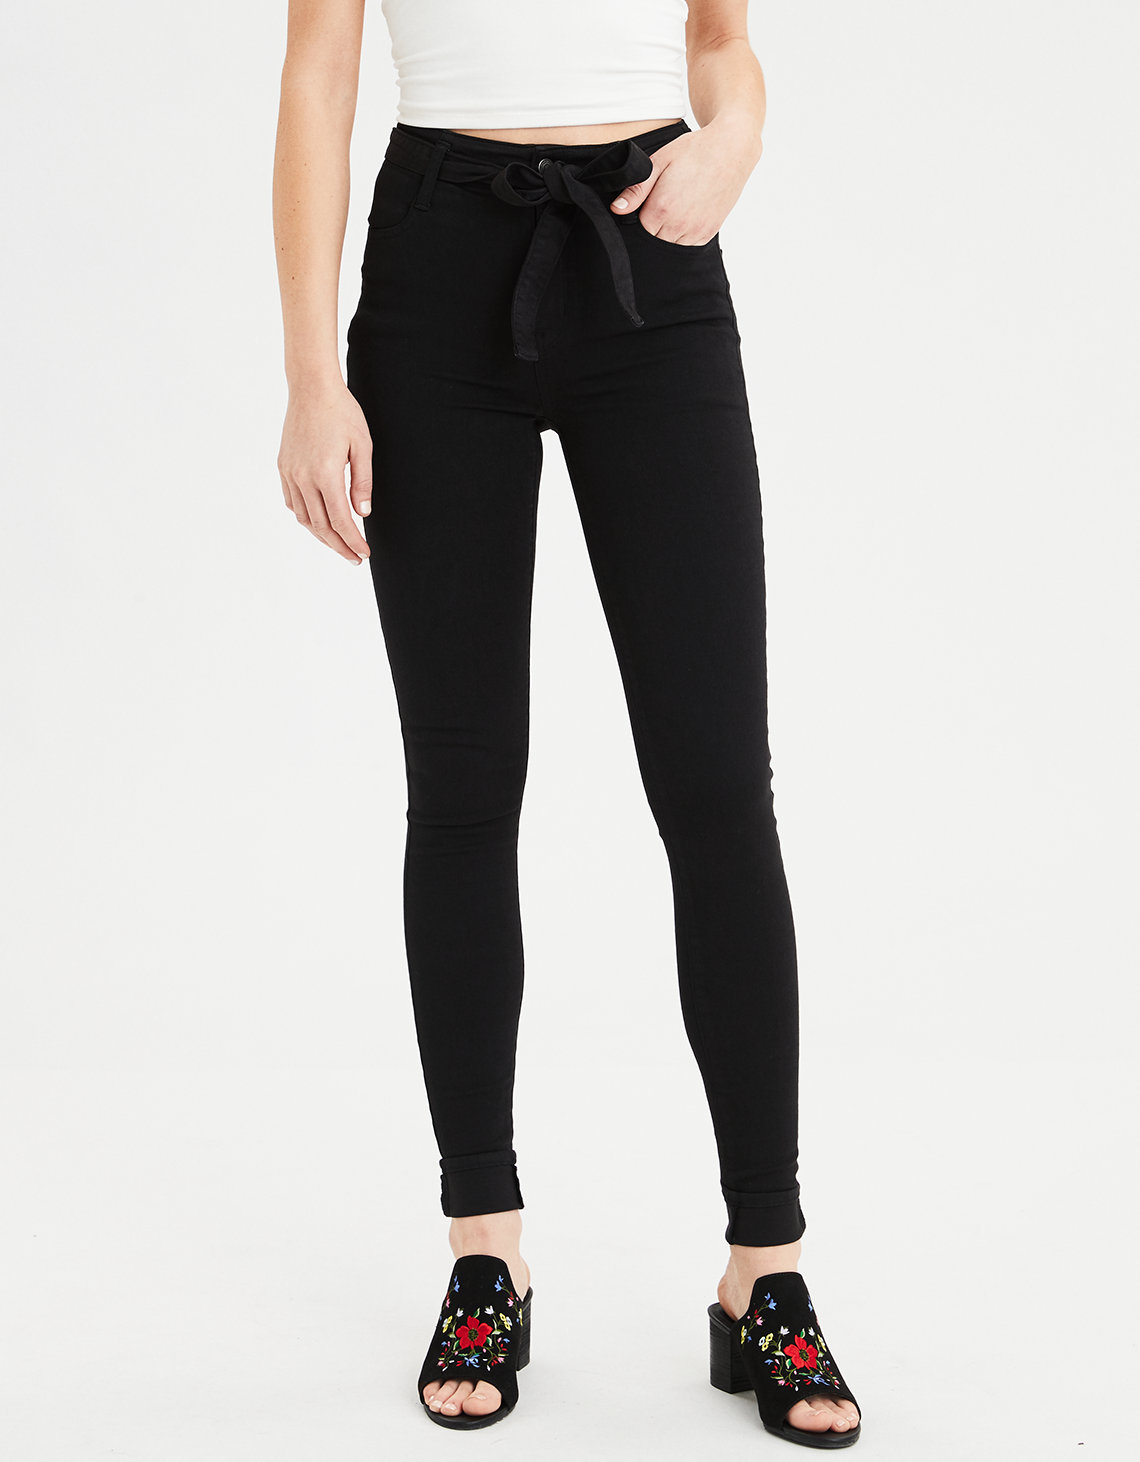 Highest Waist Jegging - Onyx Black